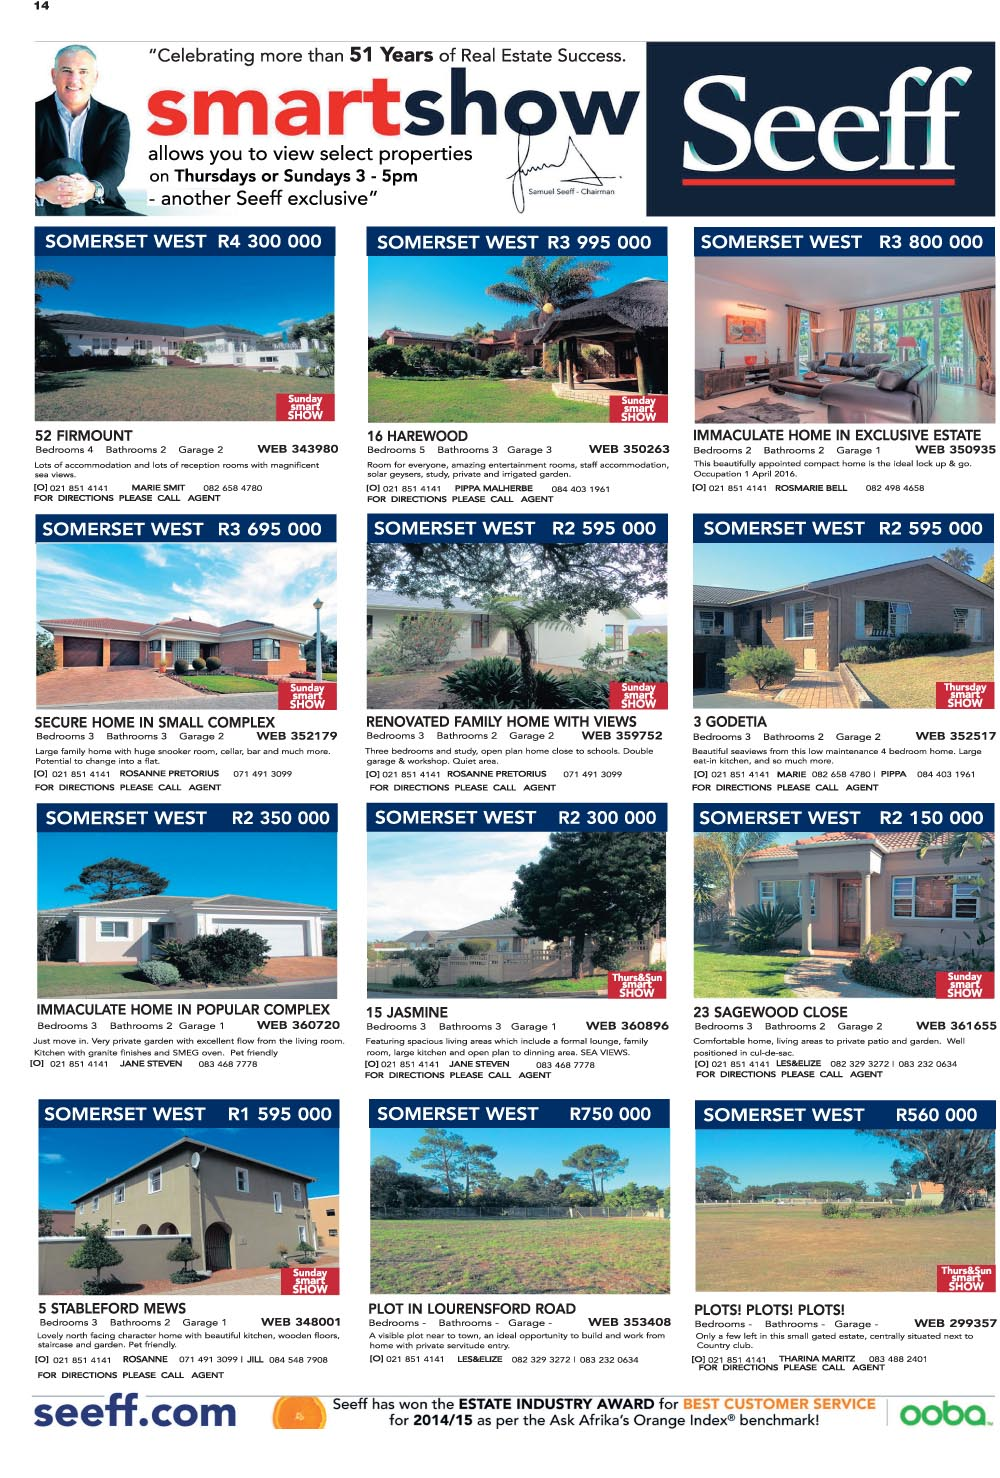 You are browsing images from the article: Property Selection-September 09 2015